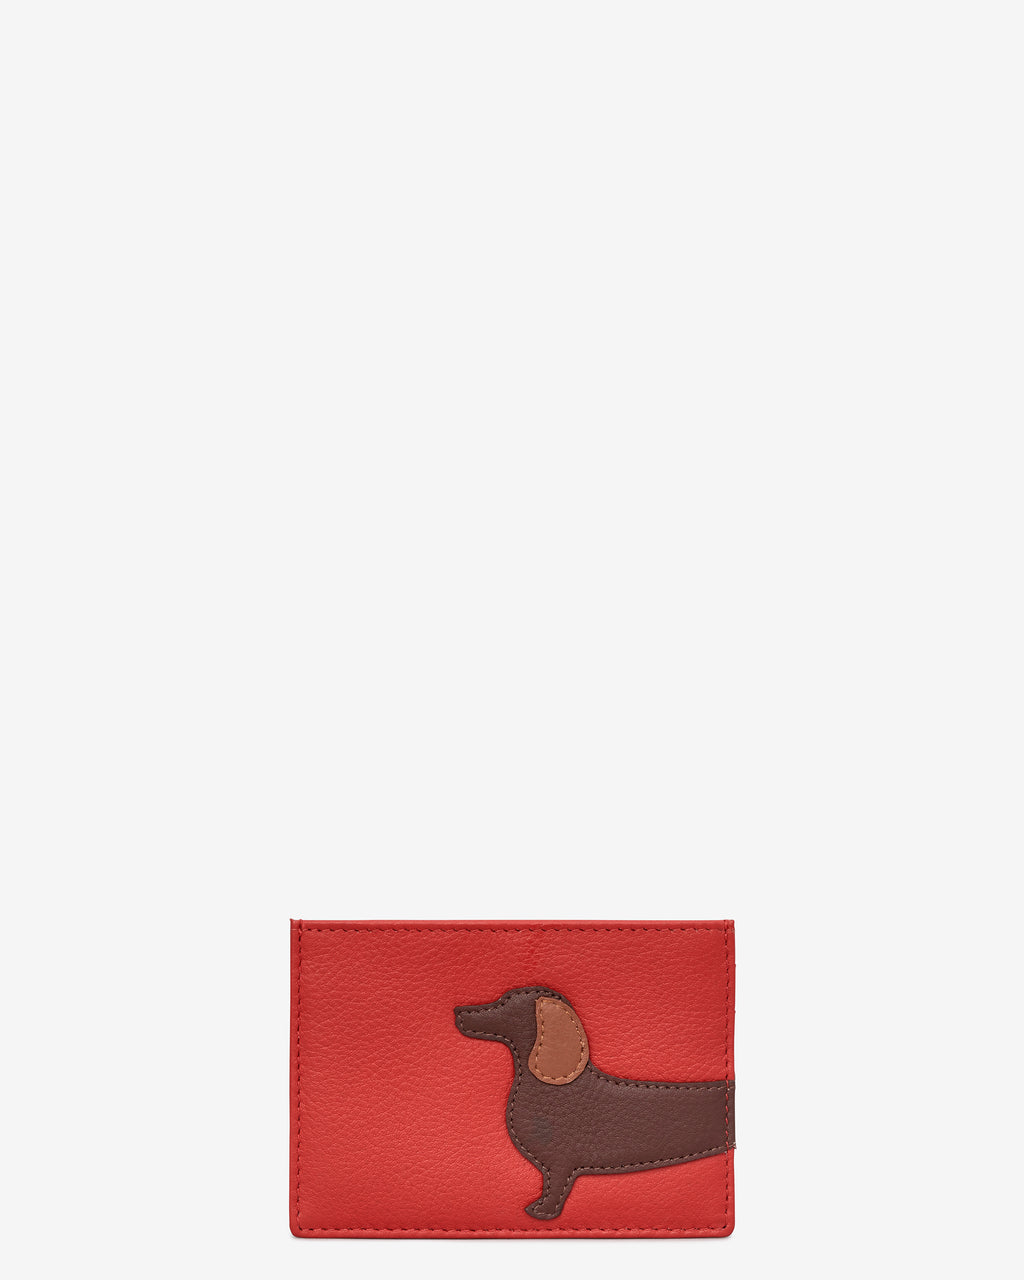 Dottie the Dachshund Slim Leather Card Holder